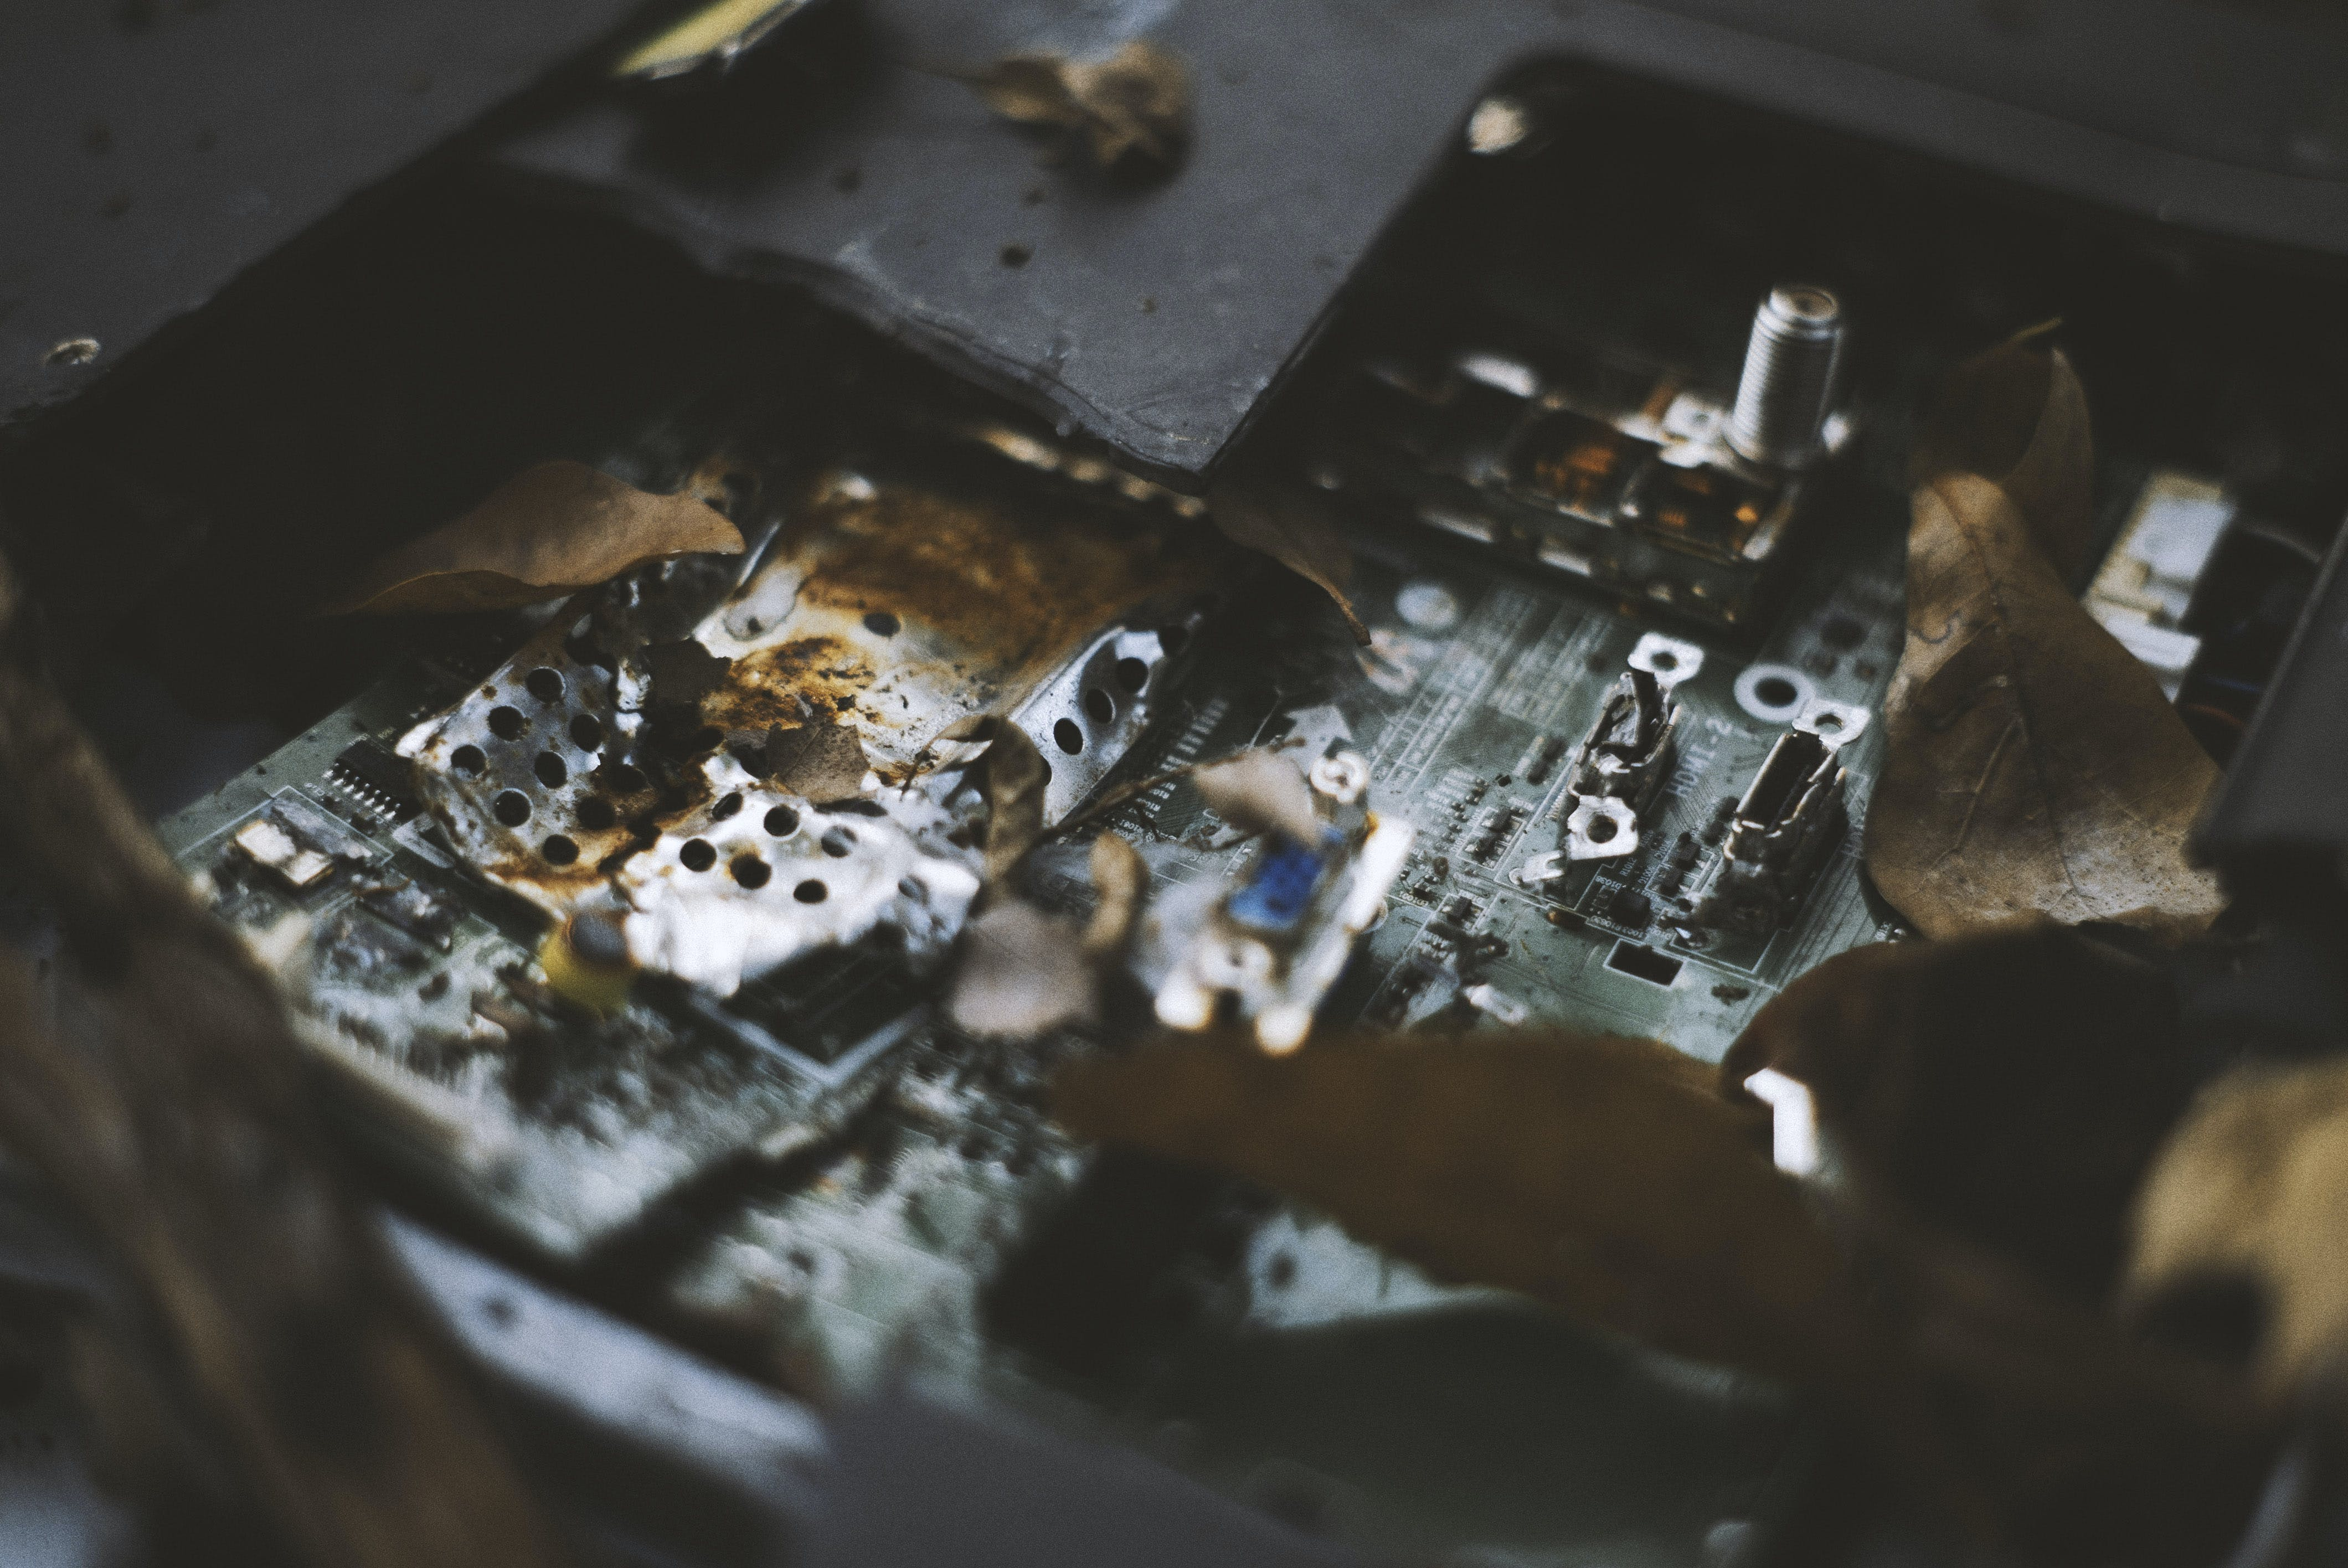 Free stock photo of circuit board, death, decaying, electrical